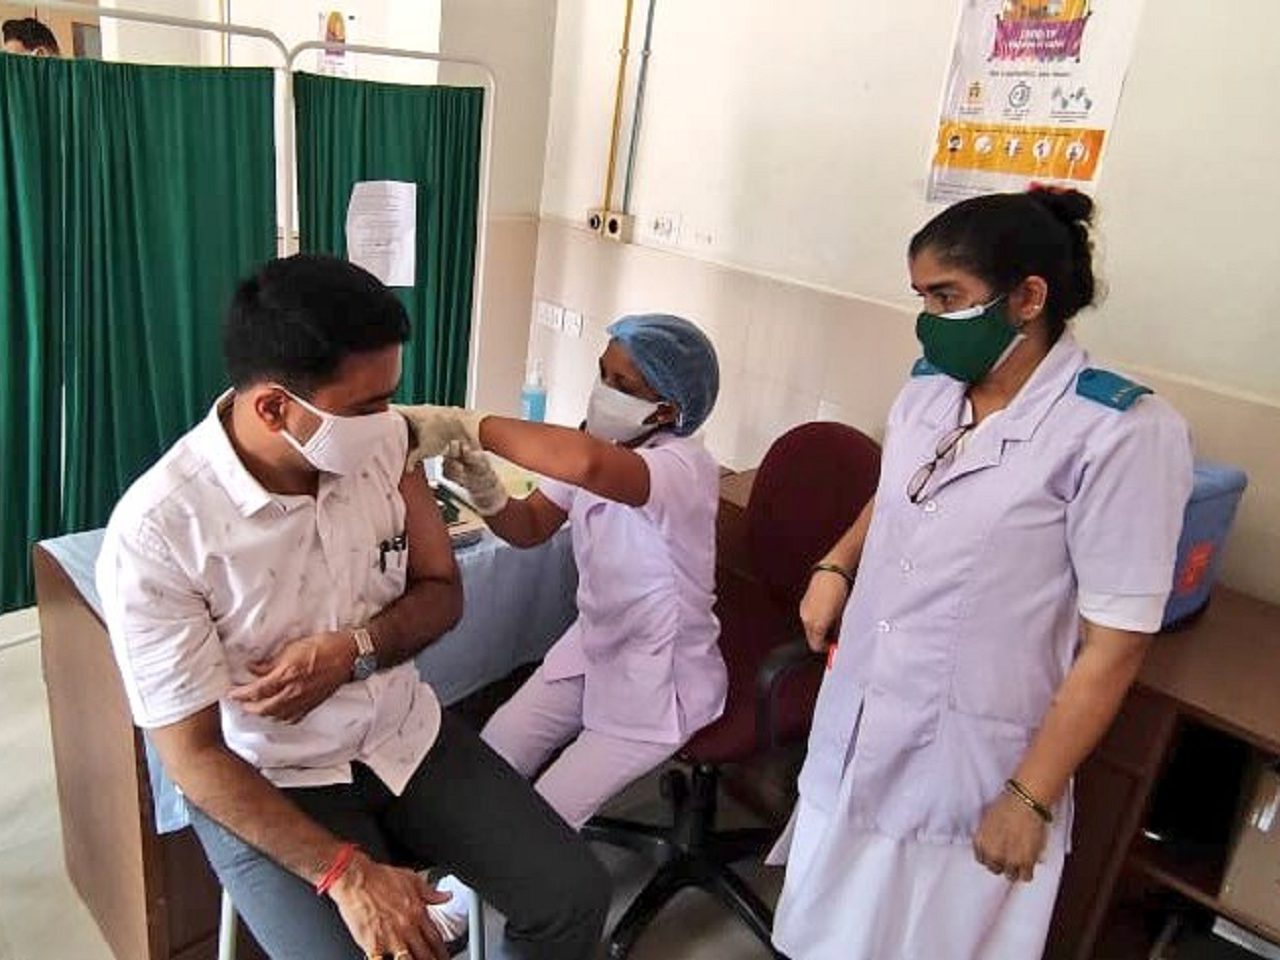 Dr Pramod Sawant took Second dose of COVID-19 Vaccine.Also he has urged all eligible citizens to get vaccinated and strengthen the fight against this pandemic.